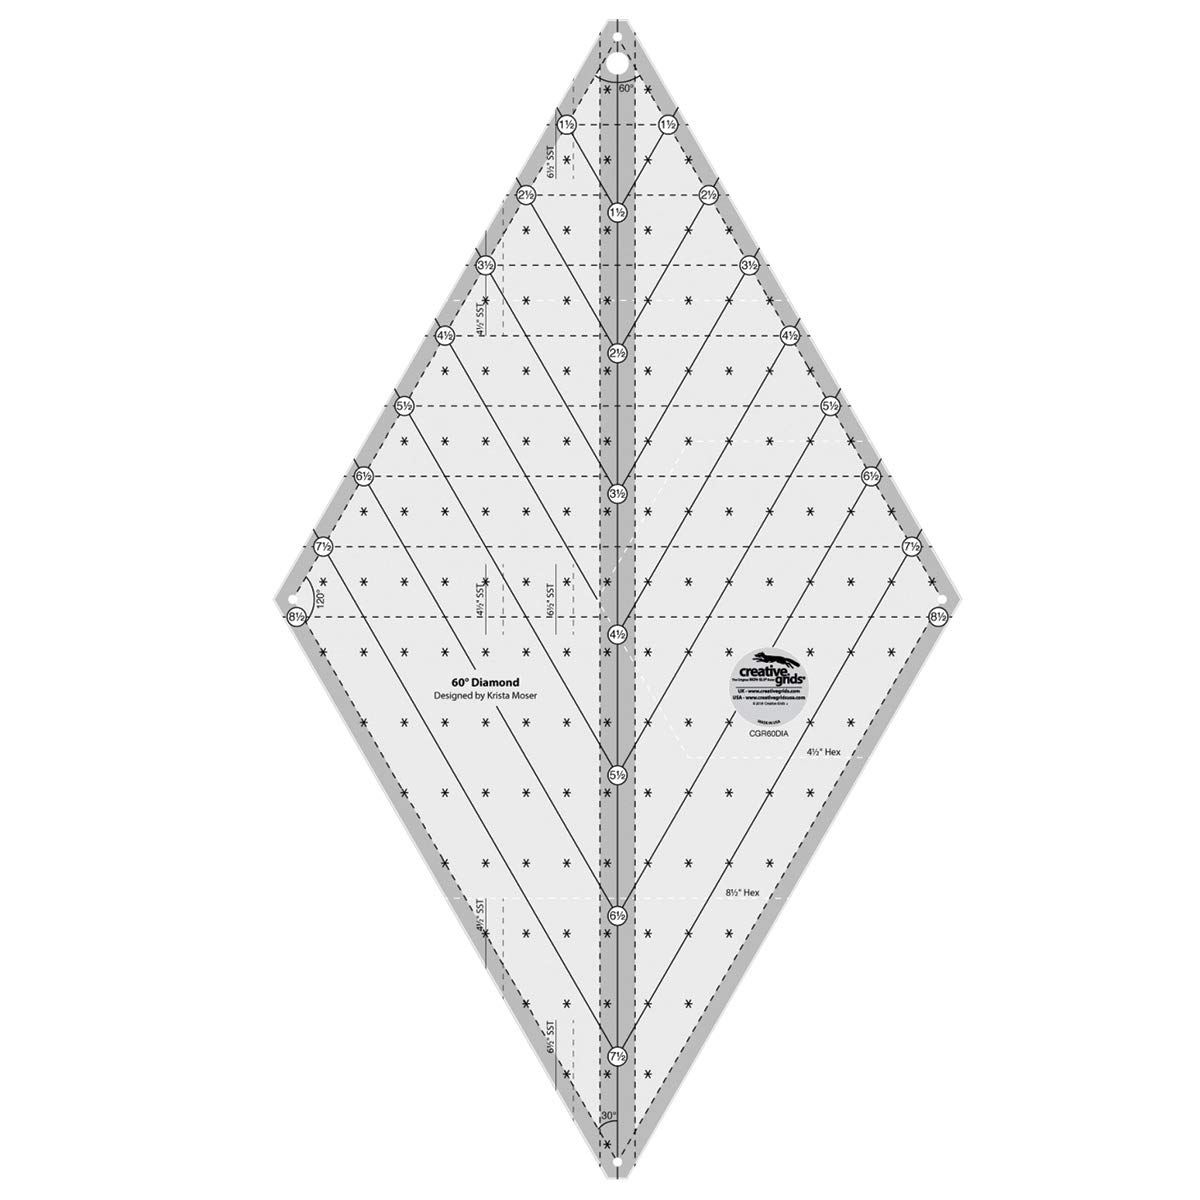 Creative Grids 60-Degree Diamond Quilting Ruler Template Designed by Krista Moser cgr60DIA by Creative Grids